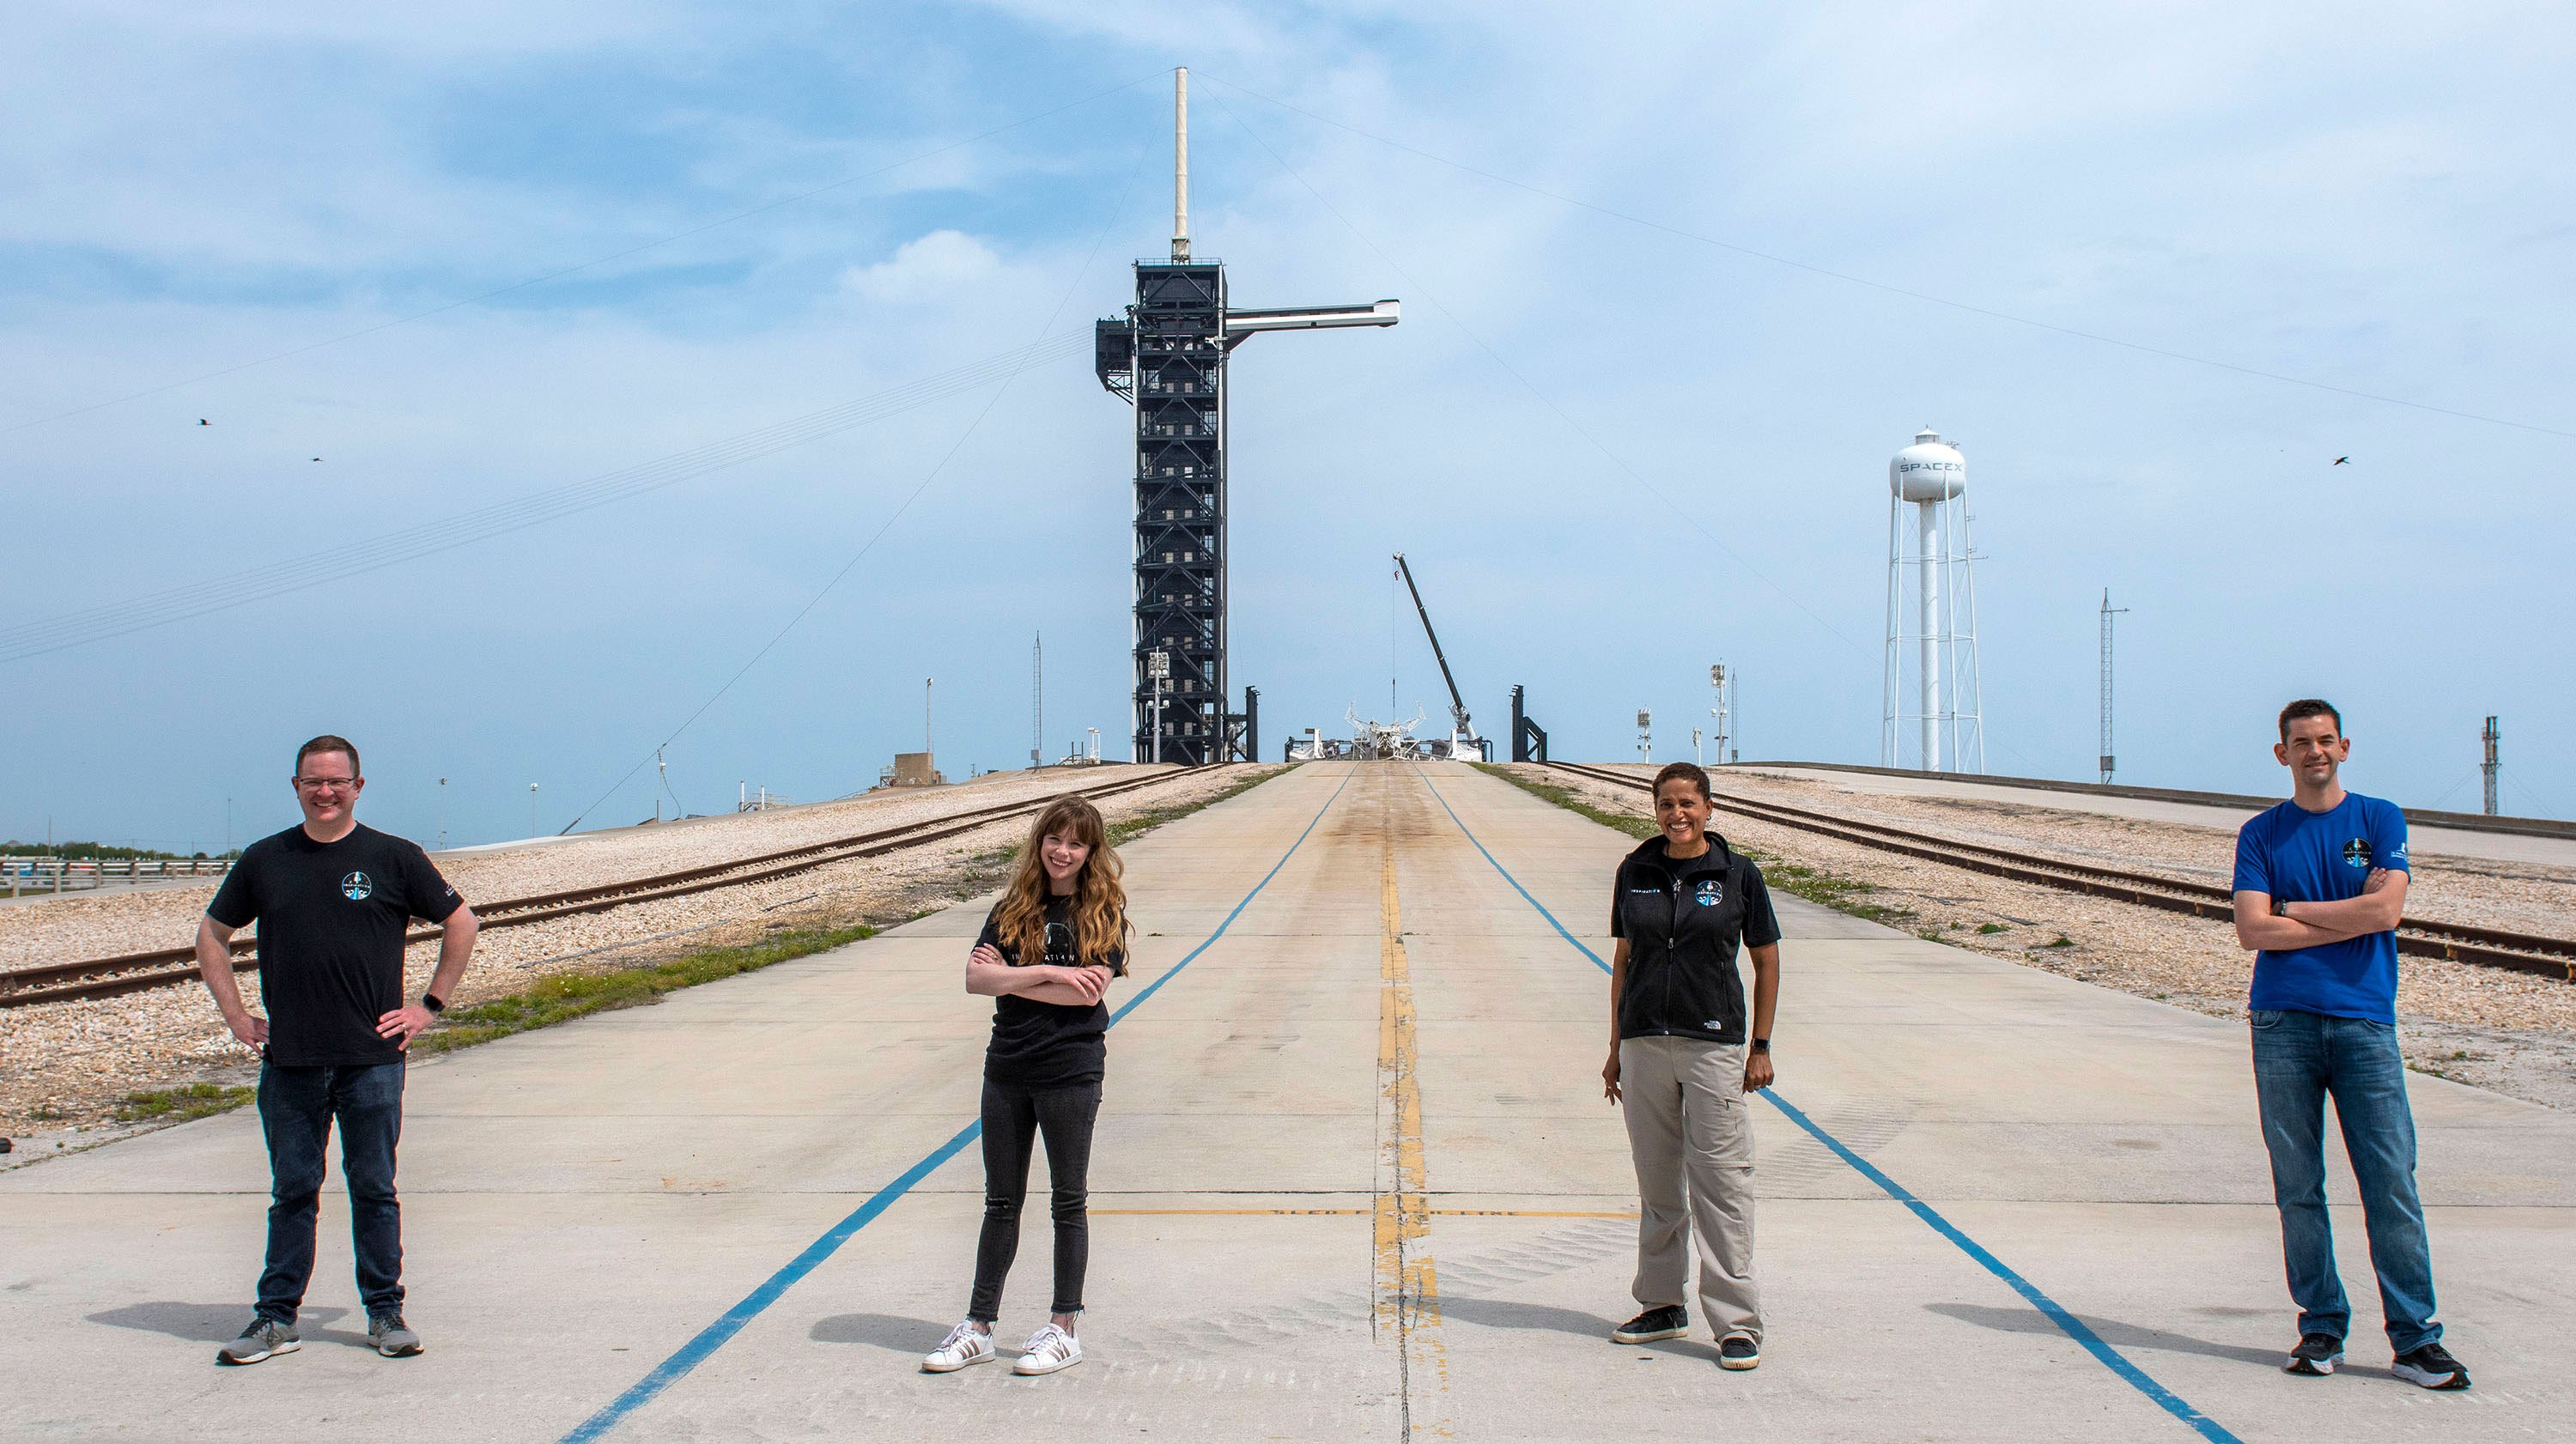 Everett engineer and Arizona prof join billionaire's crew for charity space trip